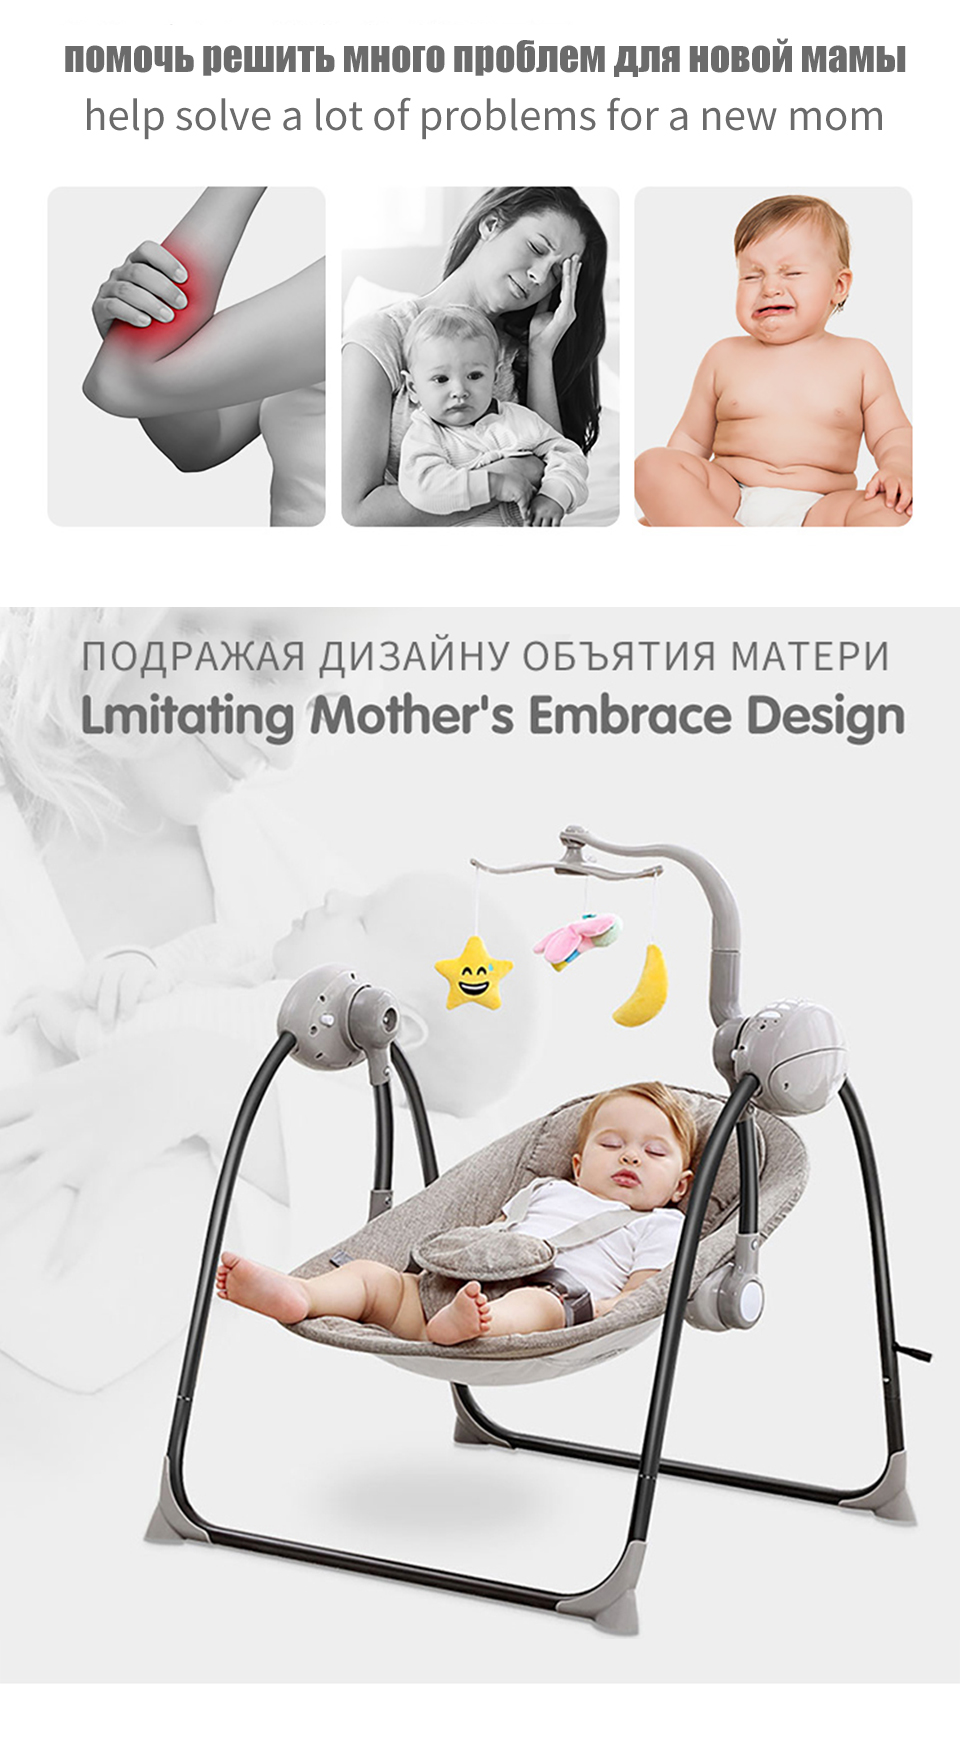 H051dd8fe5a984ac5b0beec8c52793360T IMBABY Baby Rocking Chair Baby Swing Electric Baby Cradle With Remote Control Cradle  Rocking Chair For Newborns Swing Chair